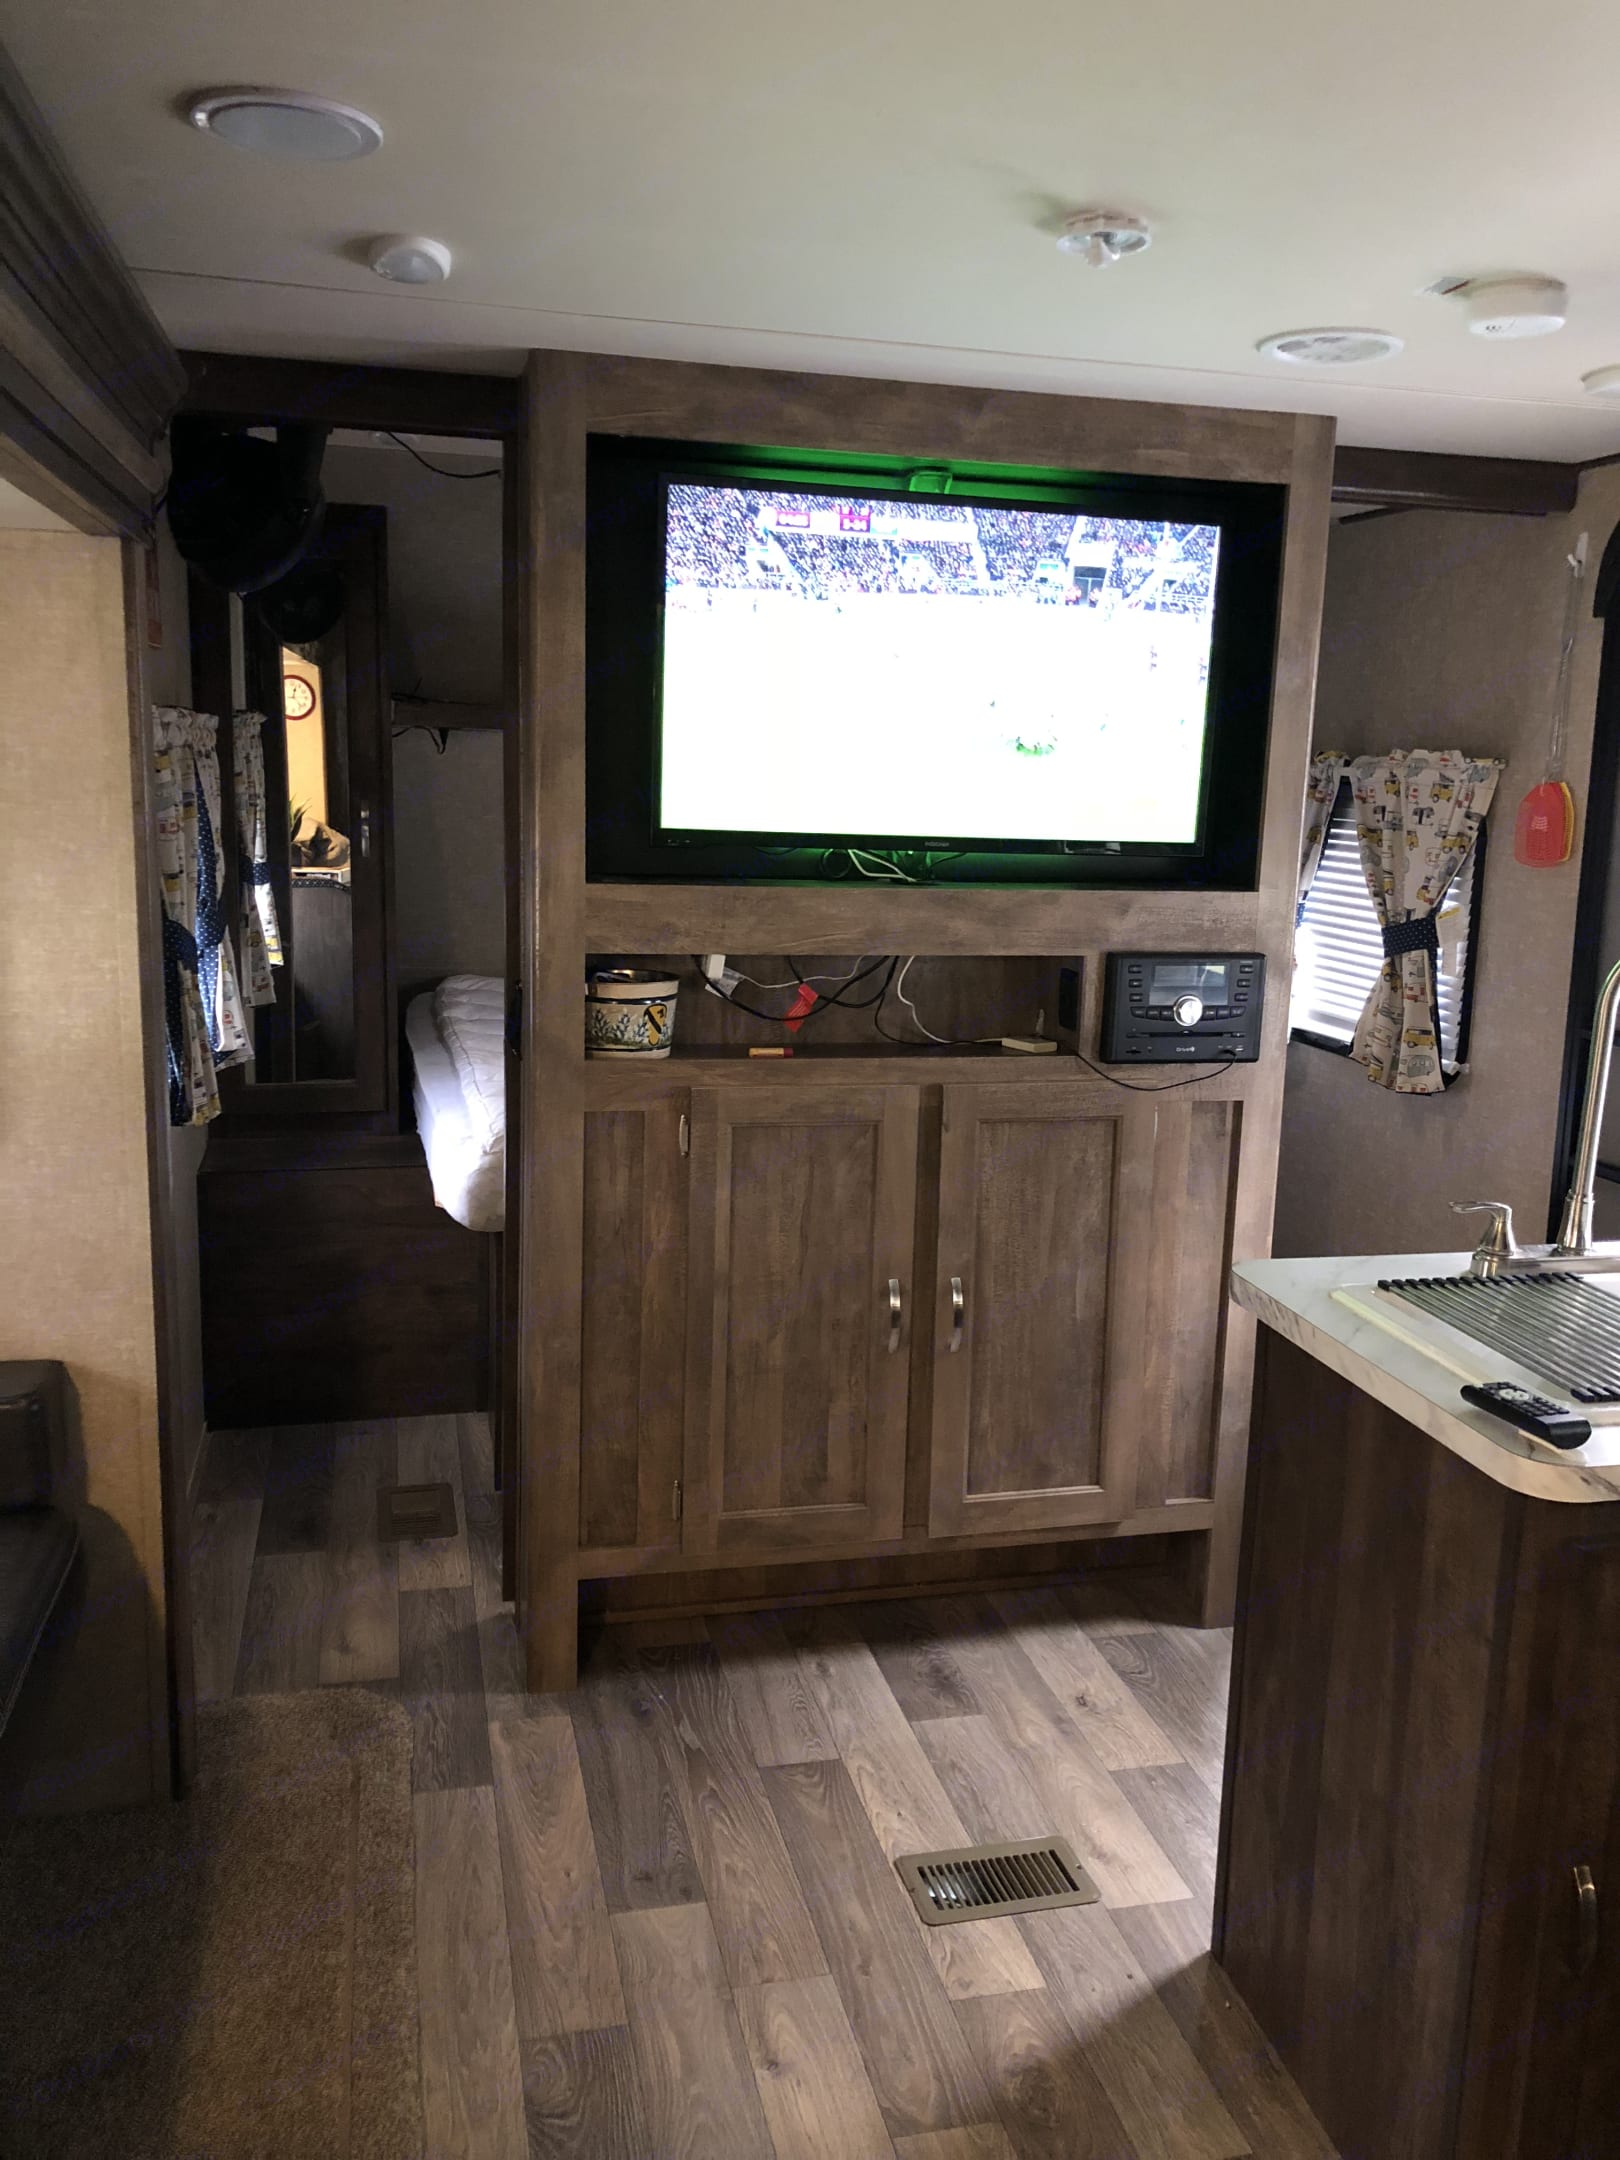 """40"""" TV w/Antena rotates between Master and living area.  . Forest River Vibe 2017"""